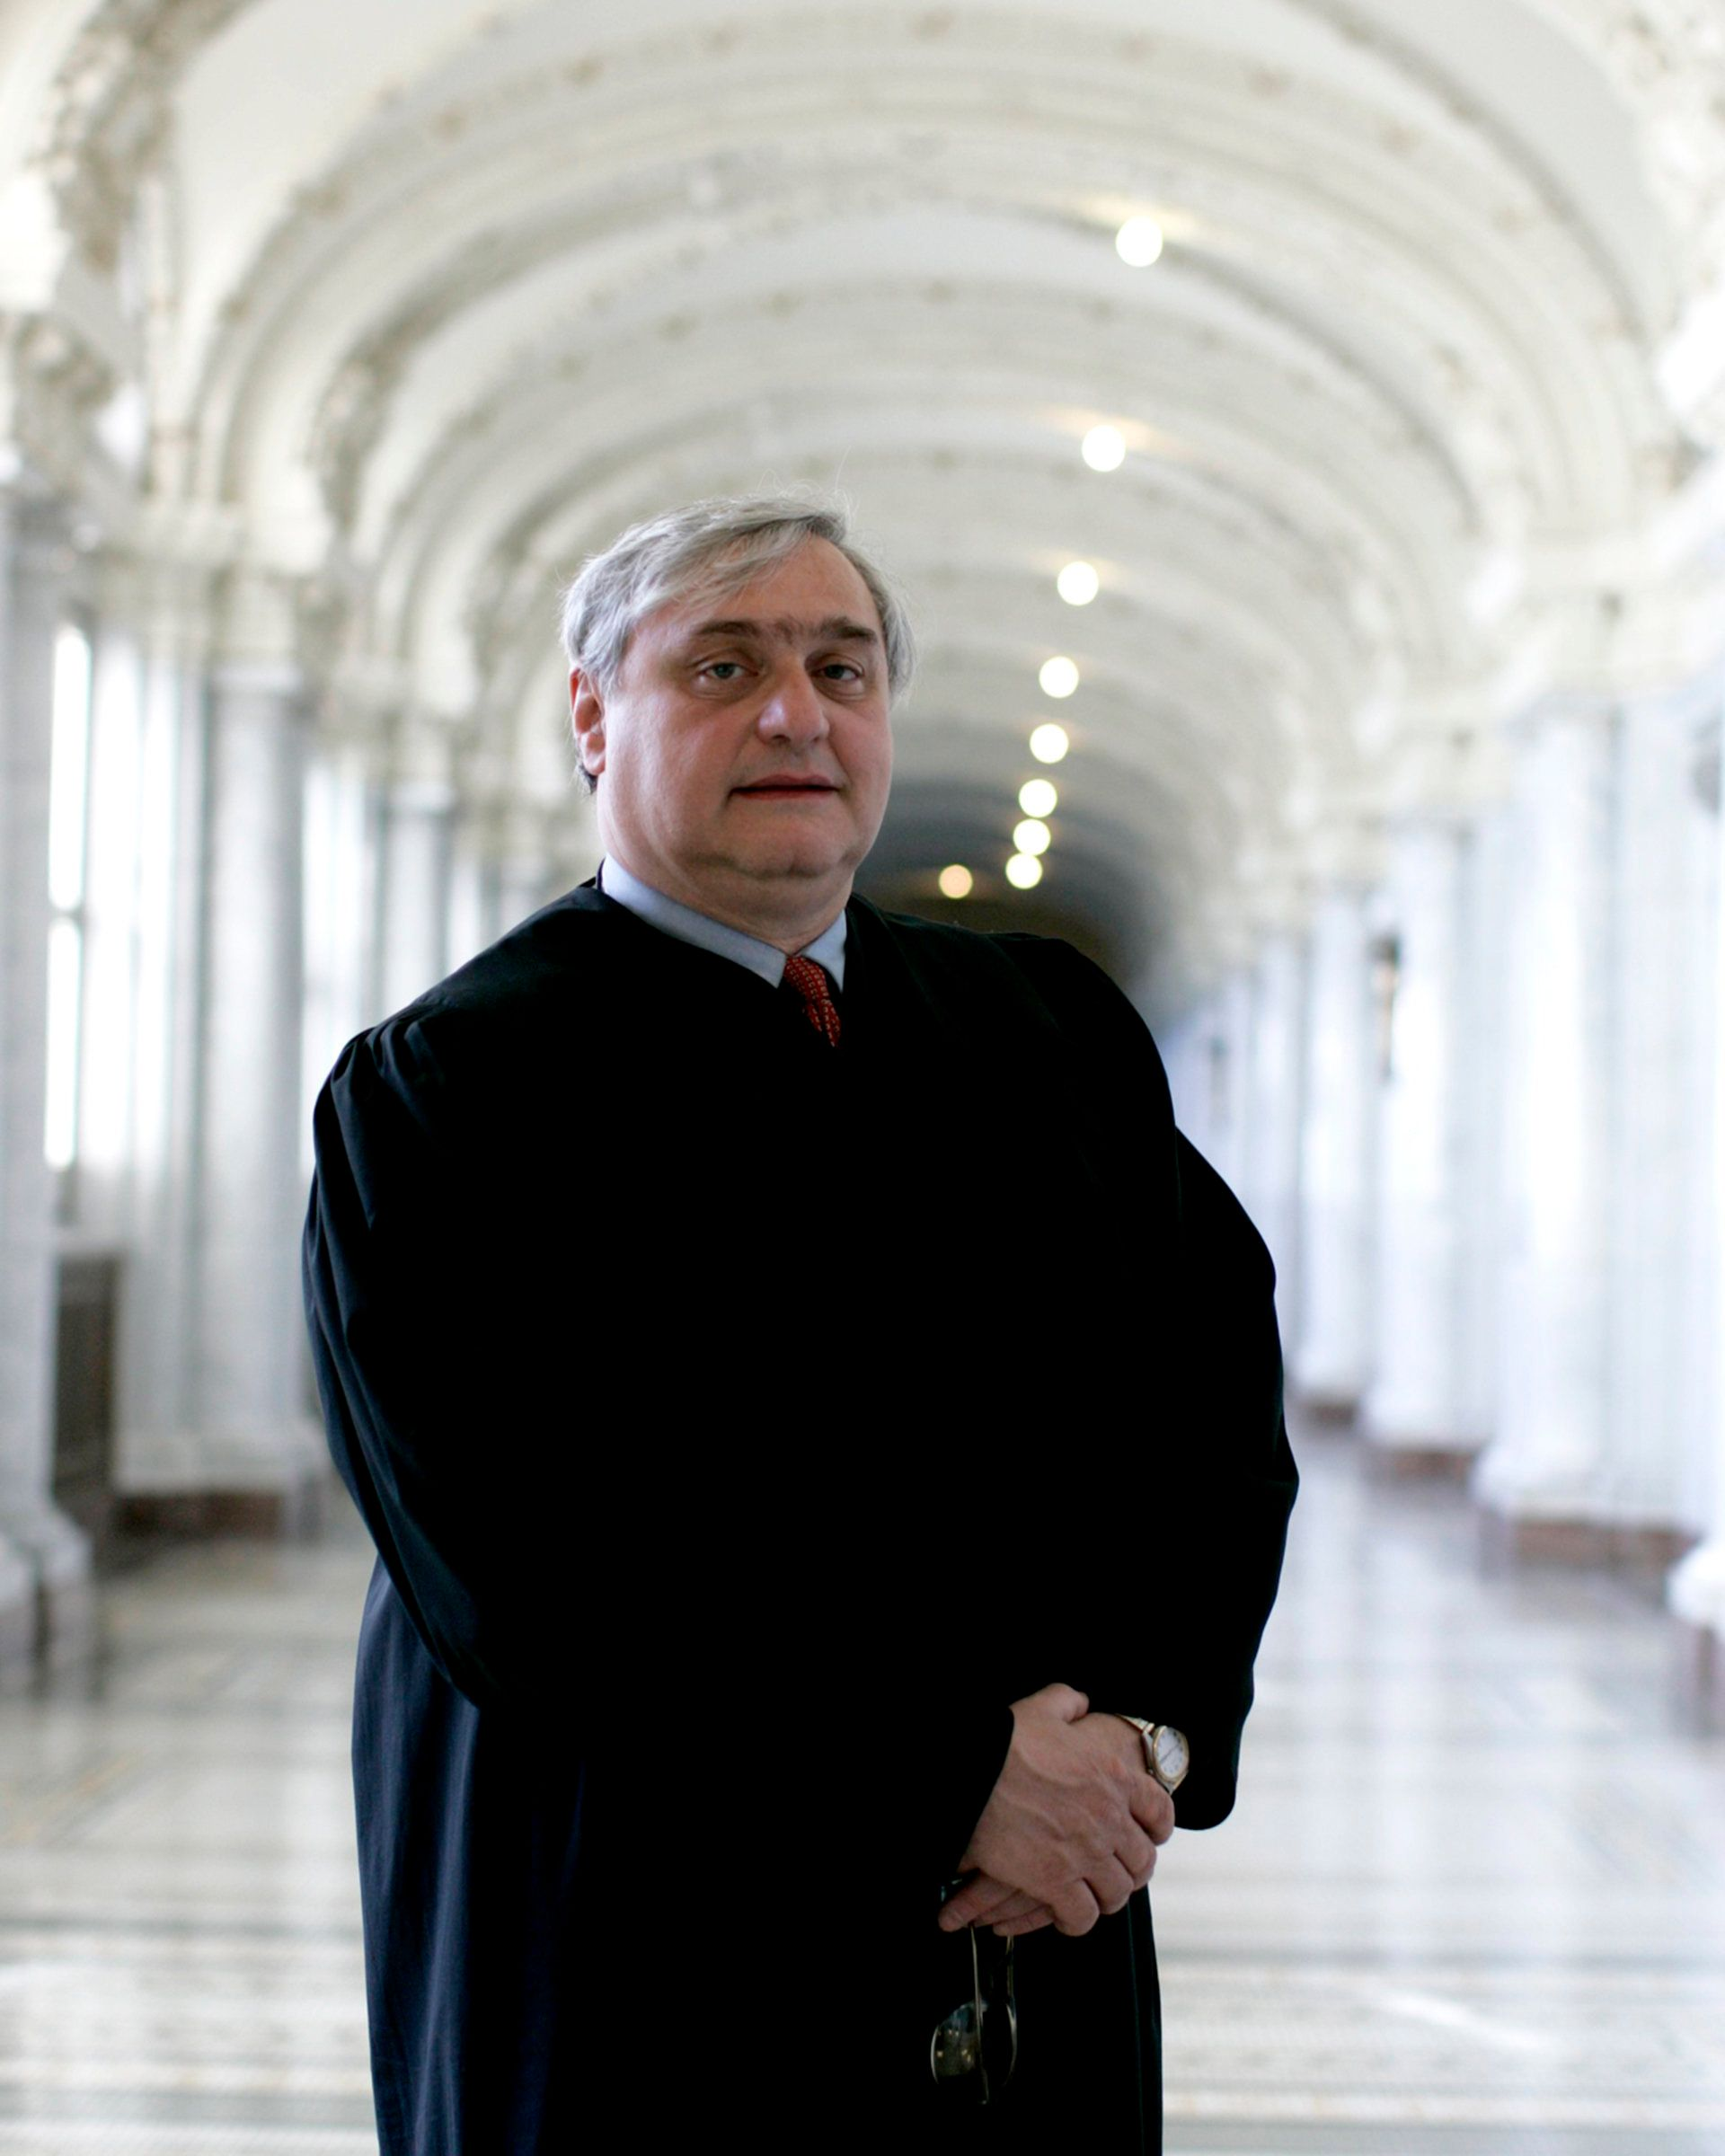 Federal Judge Alex Kozinski announced his retirement on Monday amid allegations of serial sexual misconduct.